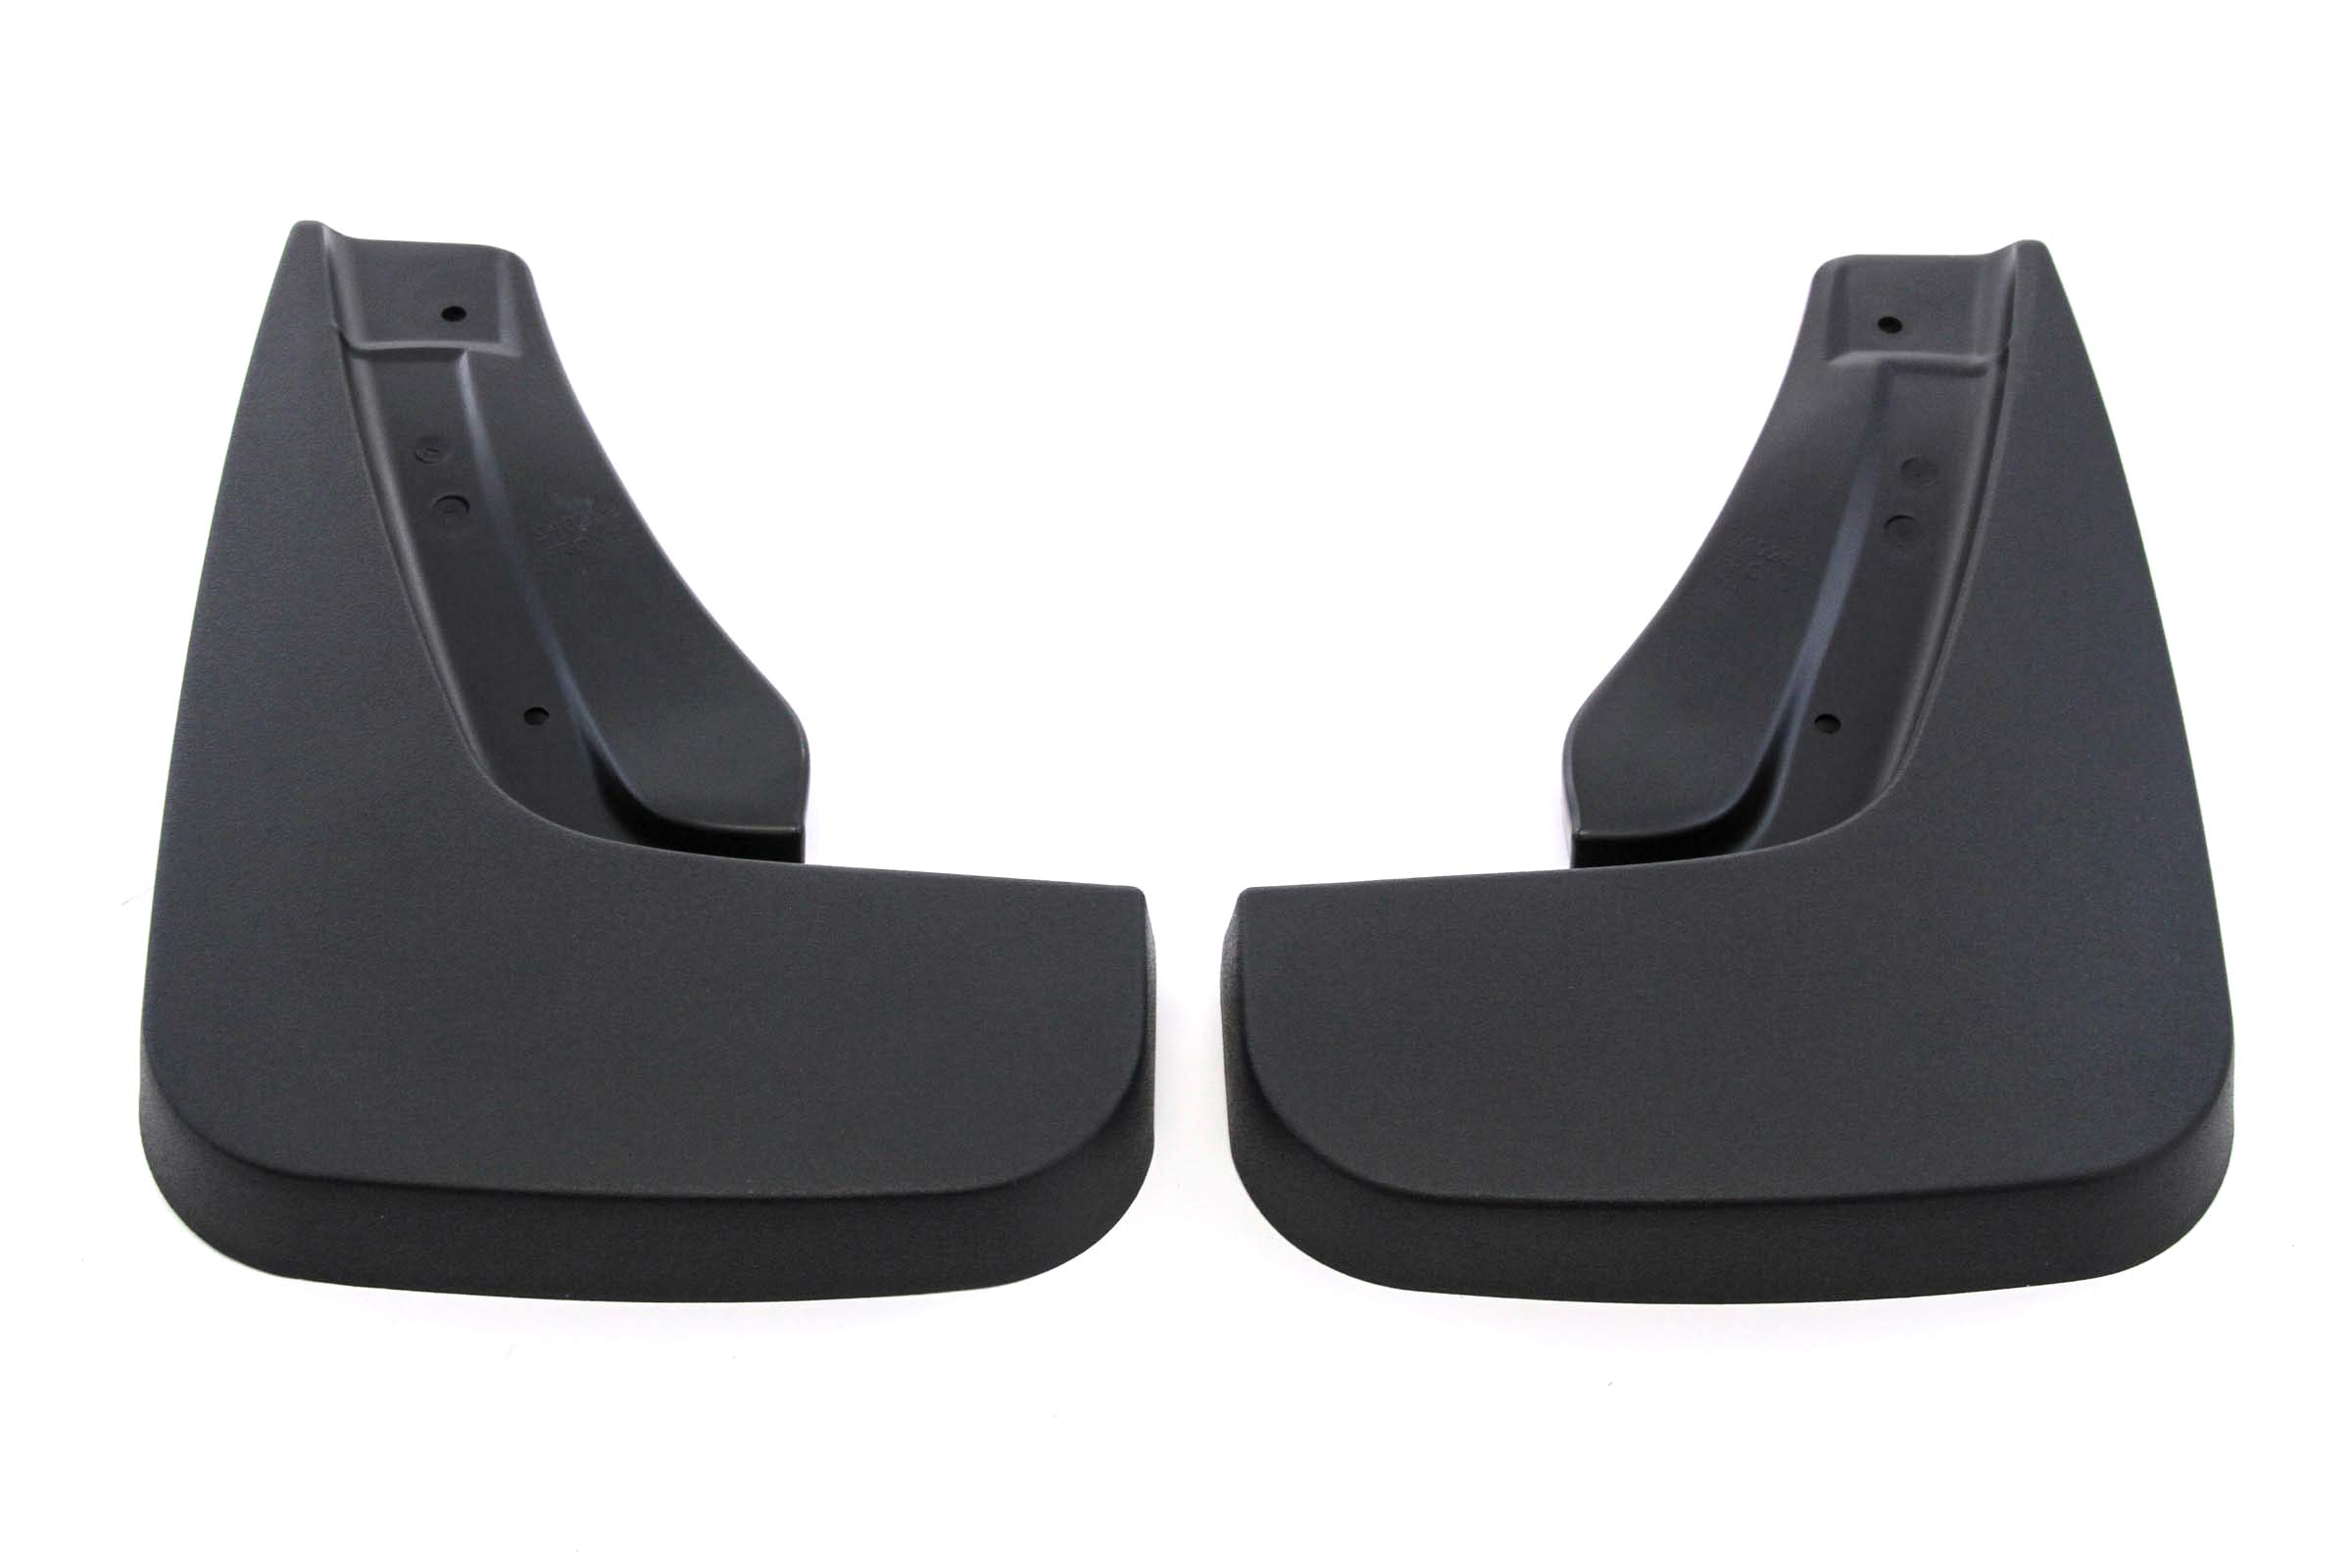 Red Hound Auto Rear Molded Mud Flaps Compatible with Dodge Durango 2011-2020 Select Models